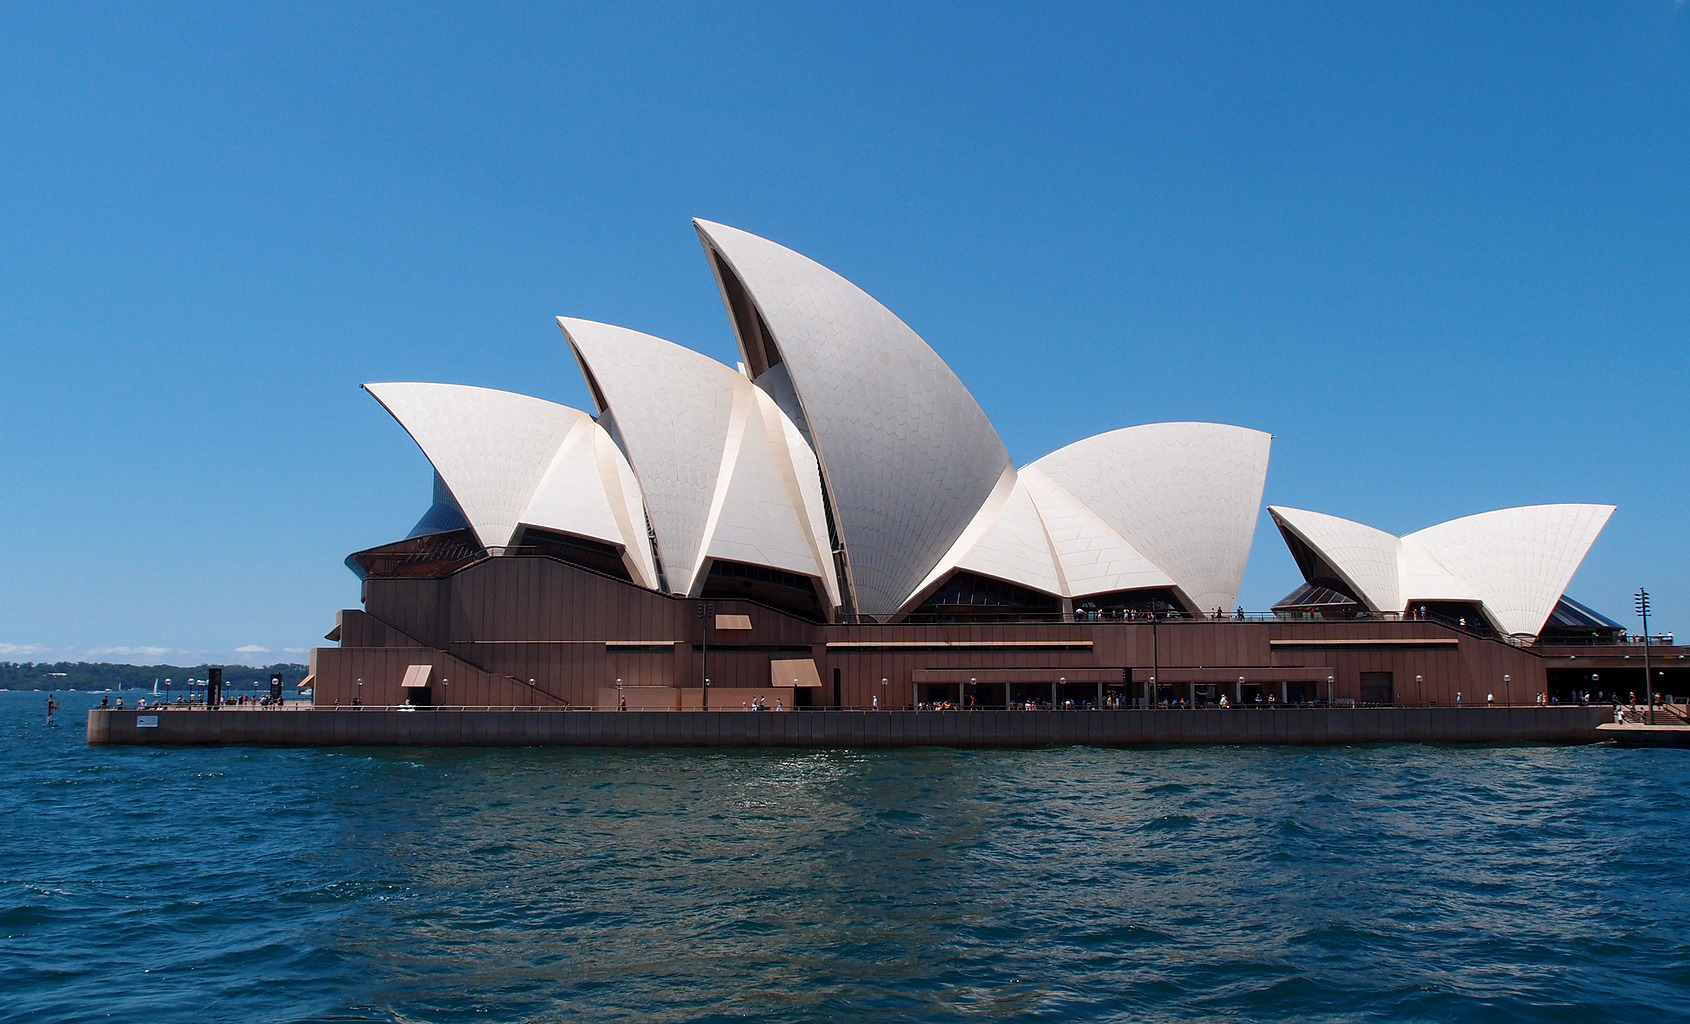 Architecture for Sydney opera housse